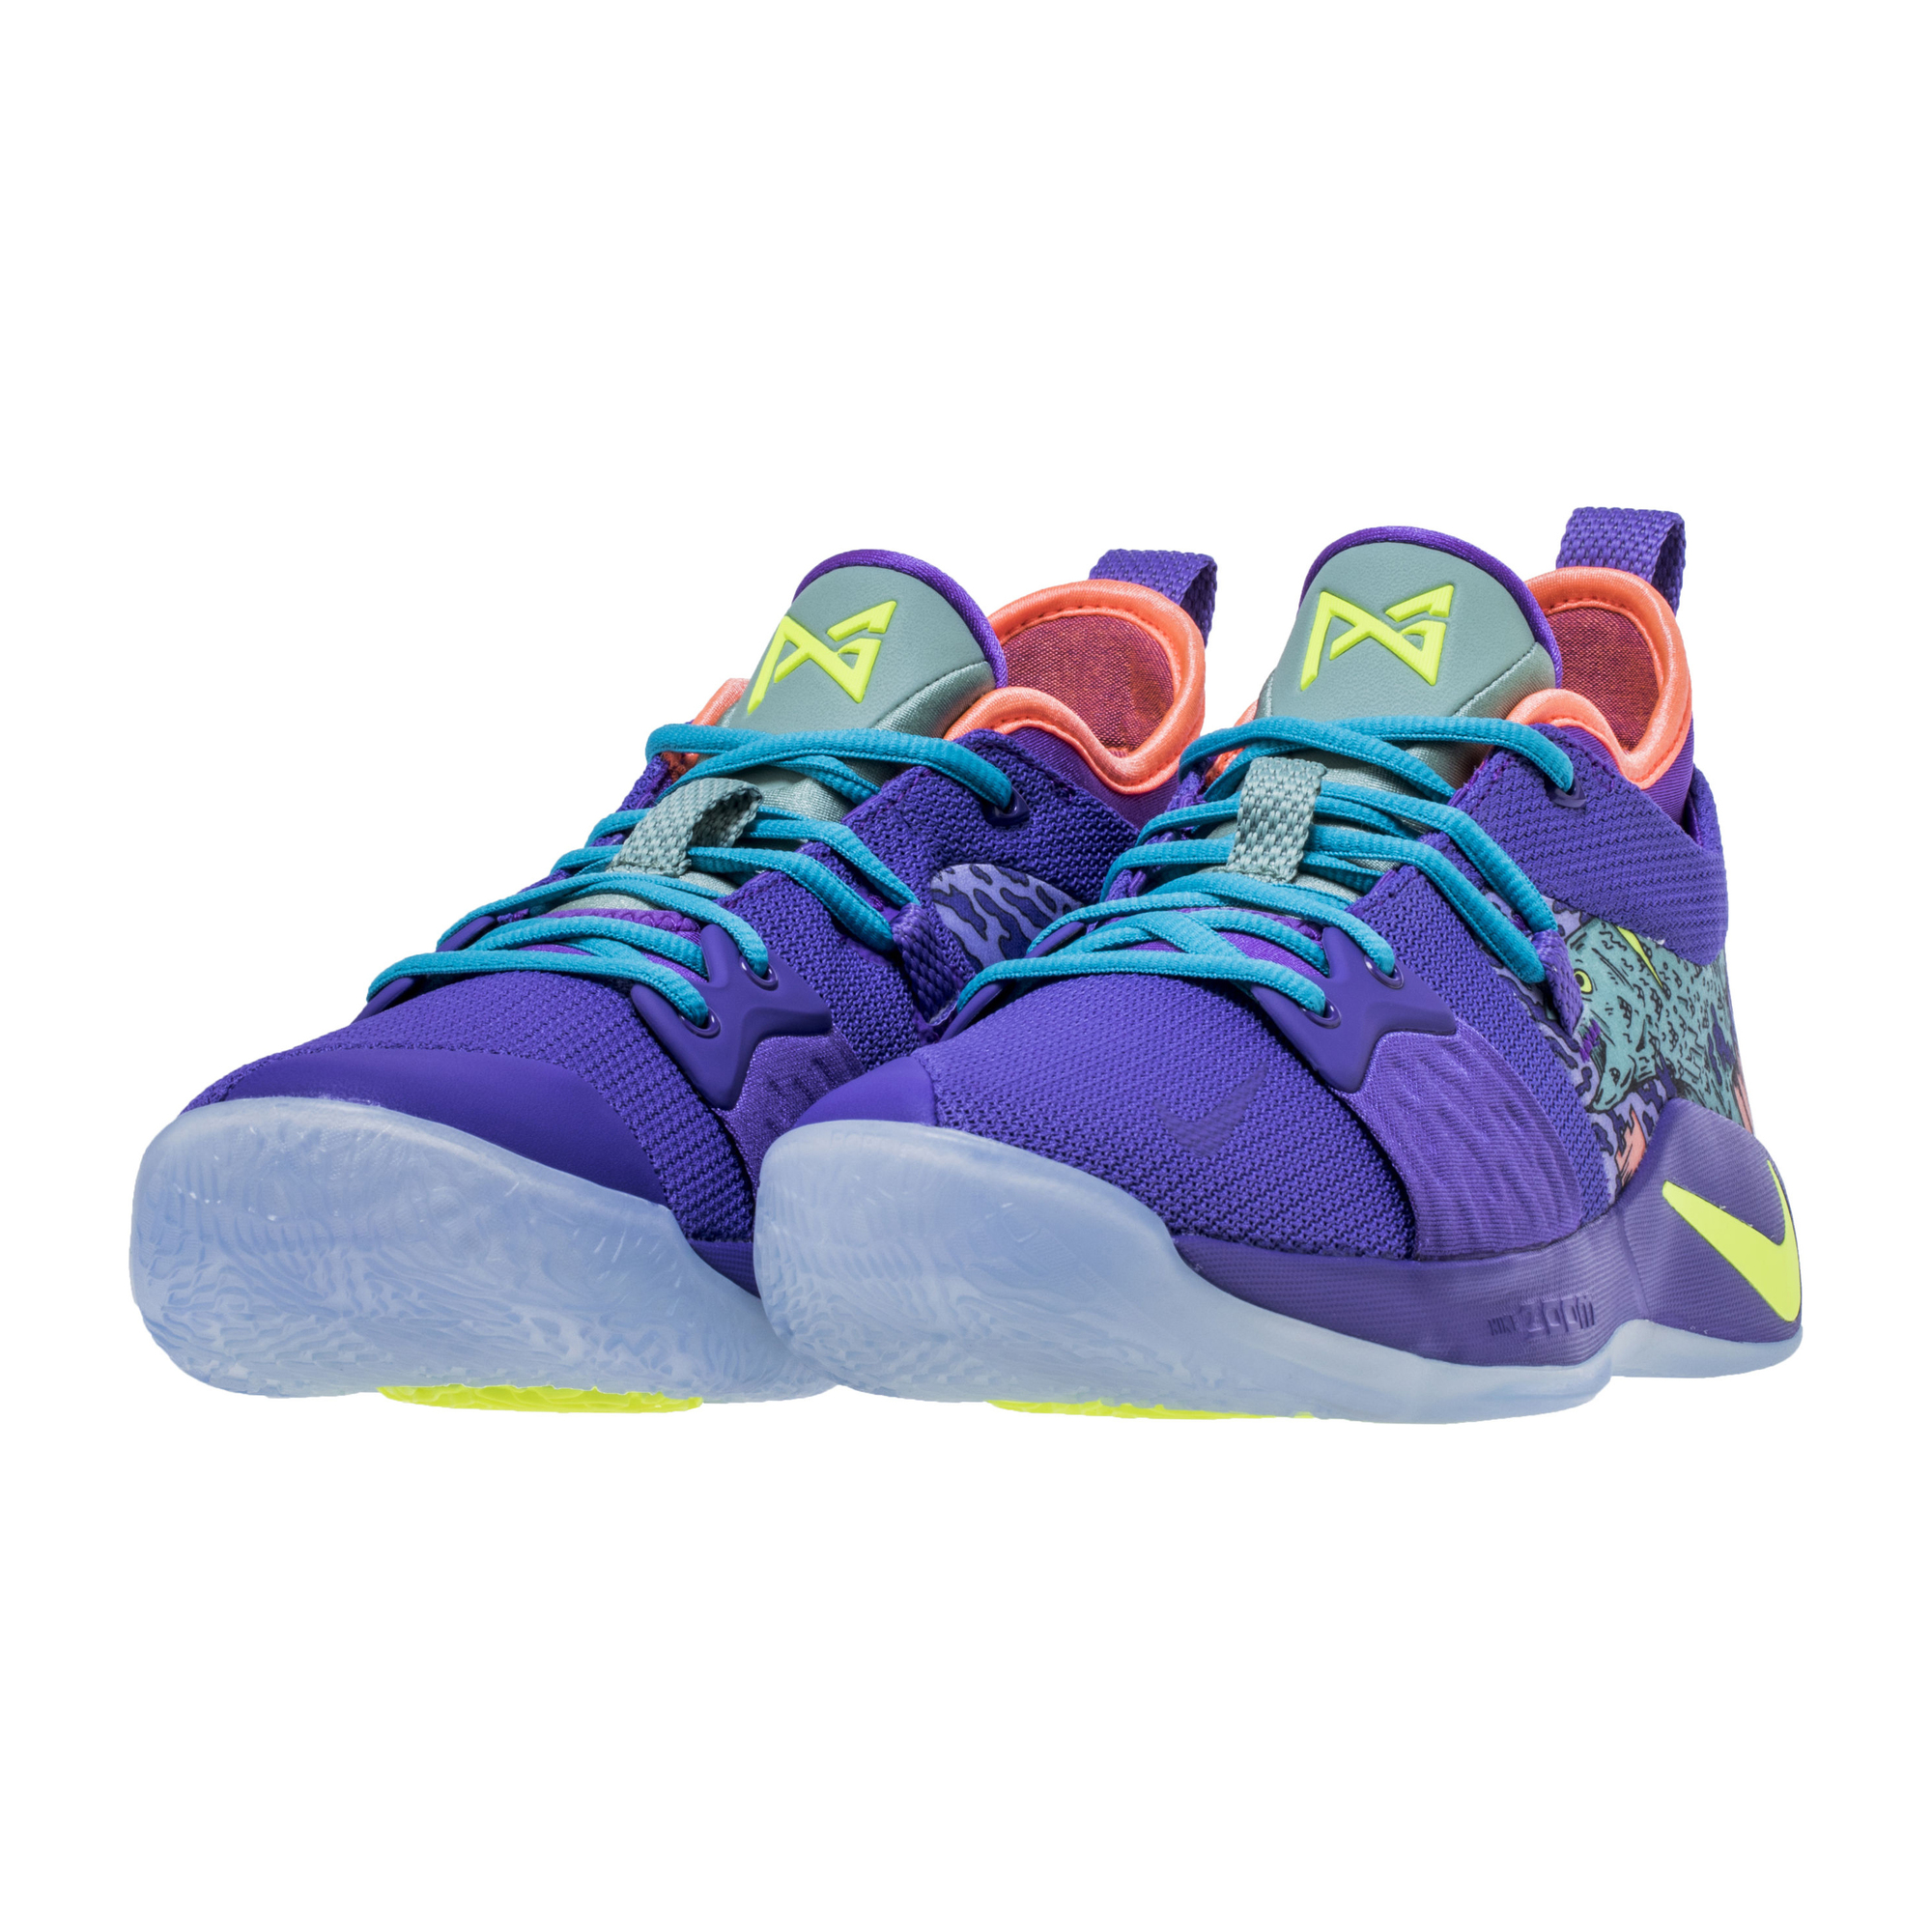 2fc1524ac95d nike pg 2 mamba mentality 5 - WearTesters